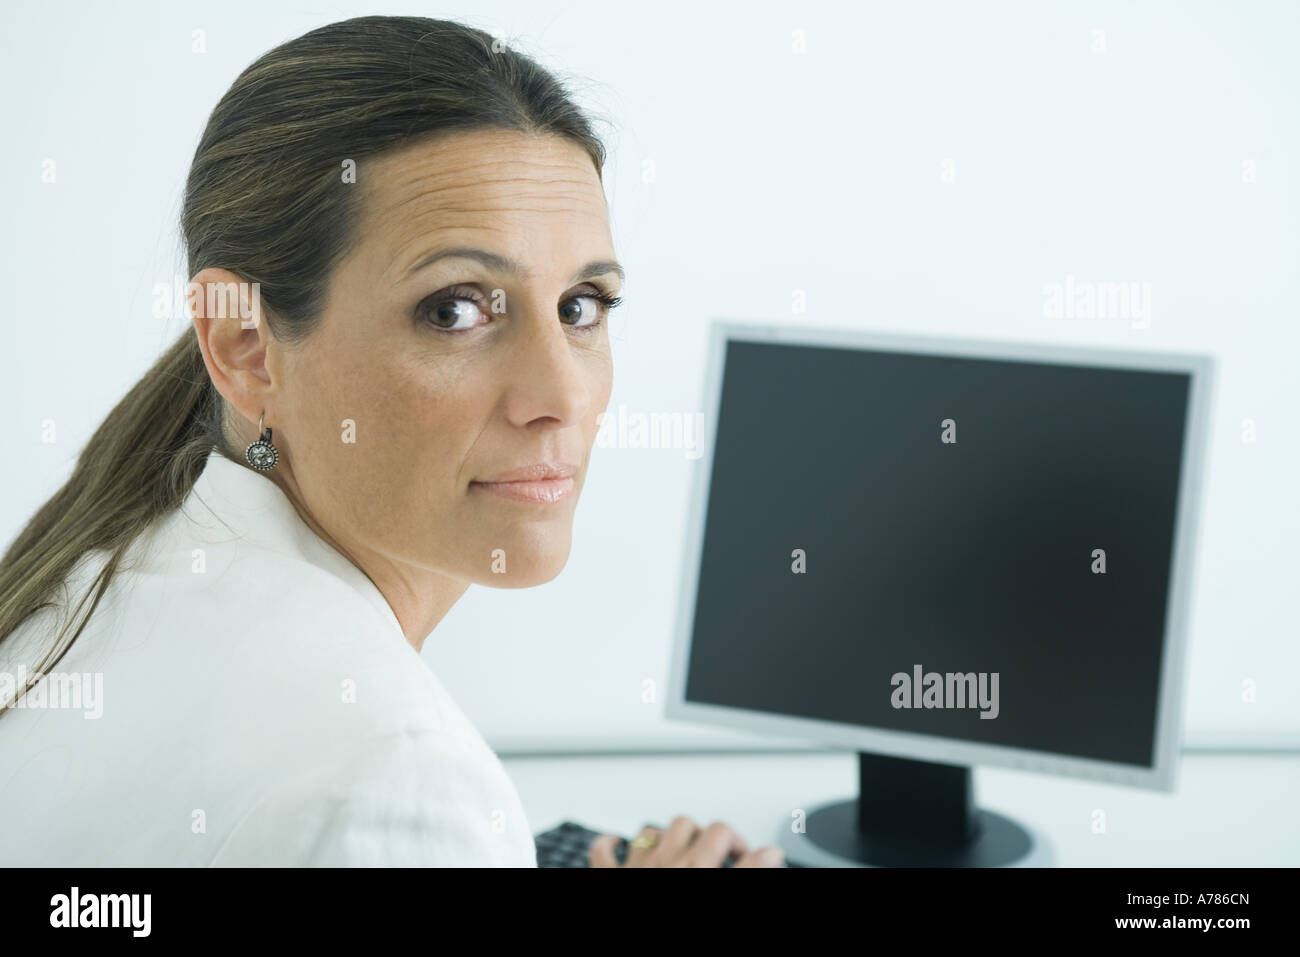 Businesswoman sitting at computer, looking over shoulder at camera - Stock Image